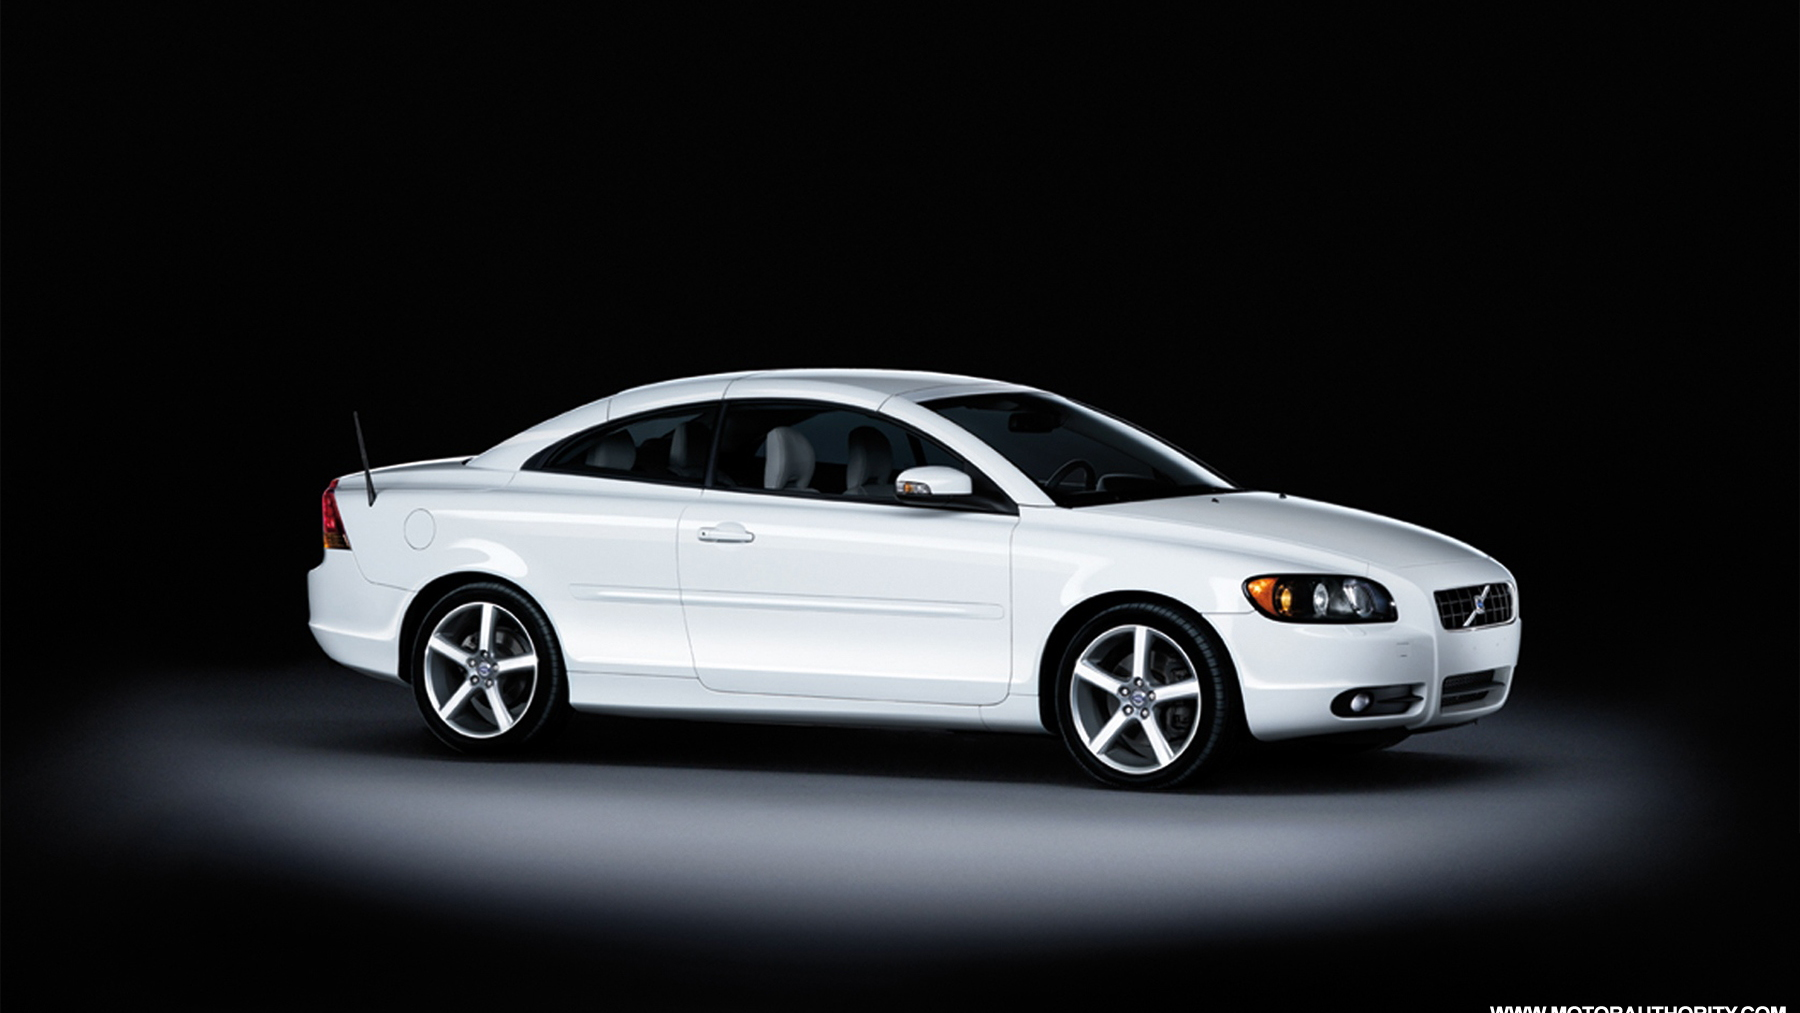 2009 volvo c70 ice white special edition 003